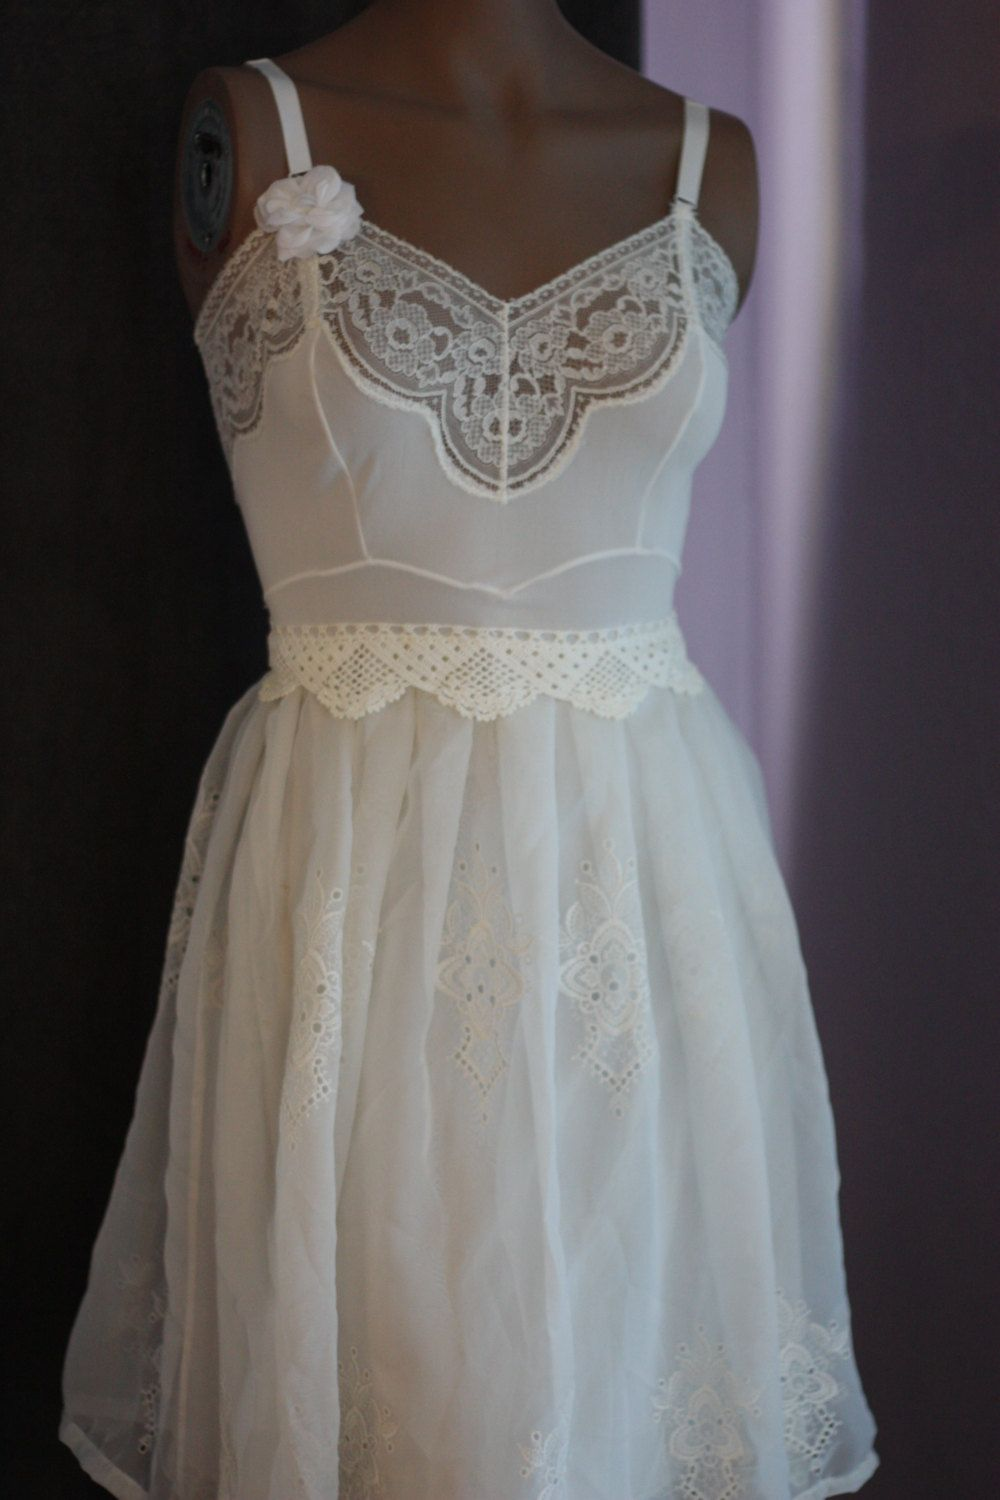 Design your own wedding dress cheap  Design your own Eco Friendly Knee length Wedding Dress one of a kind